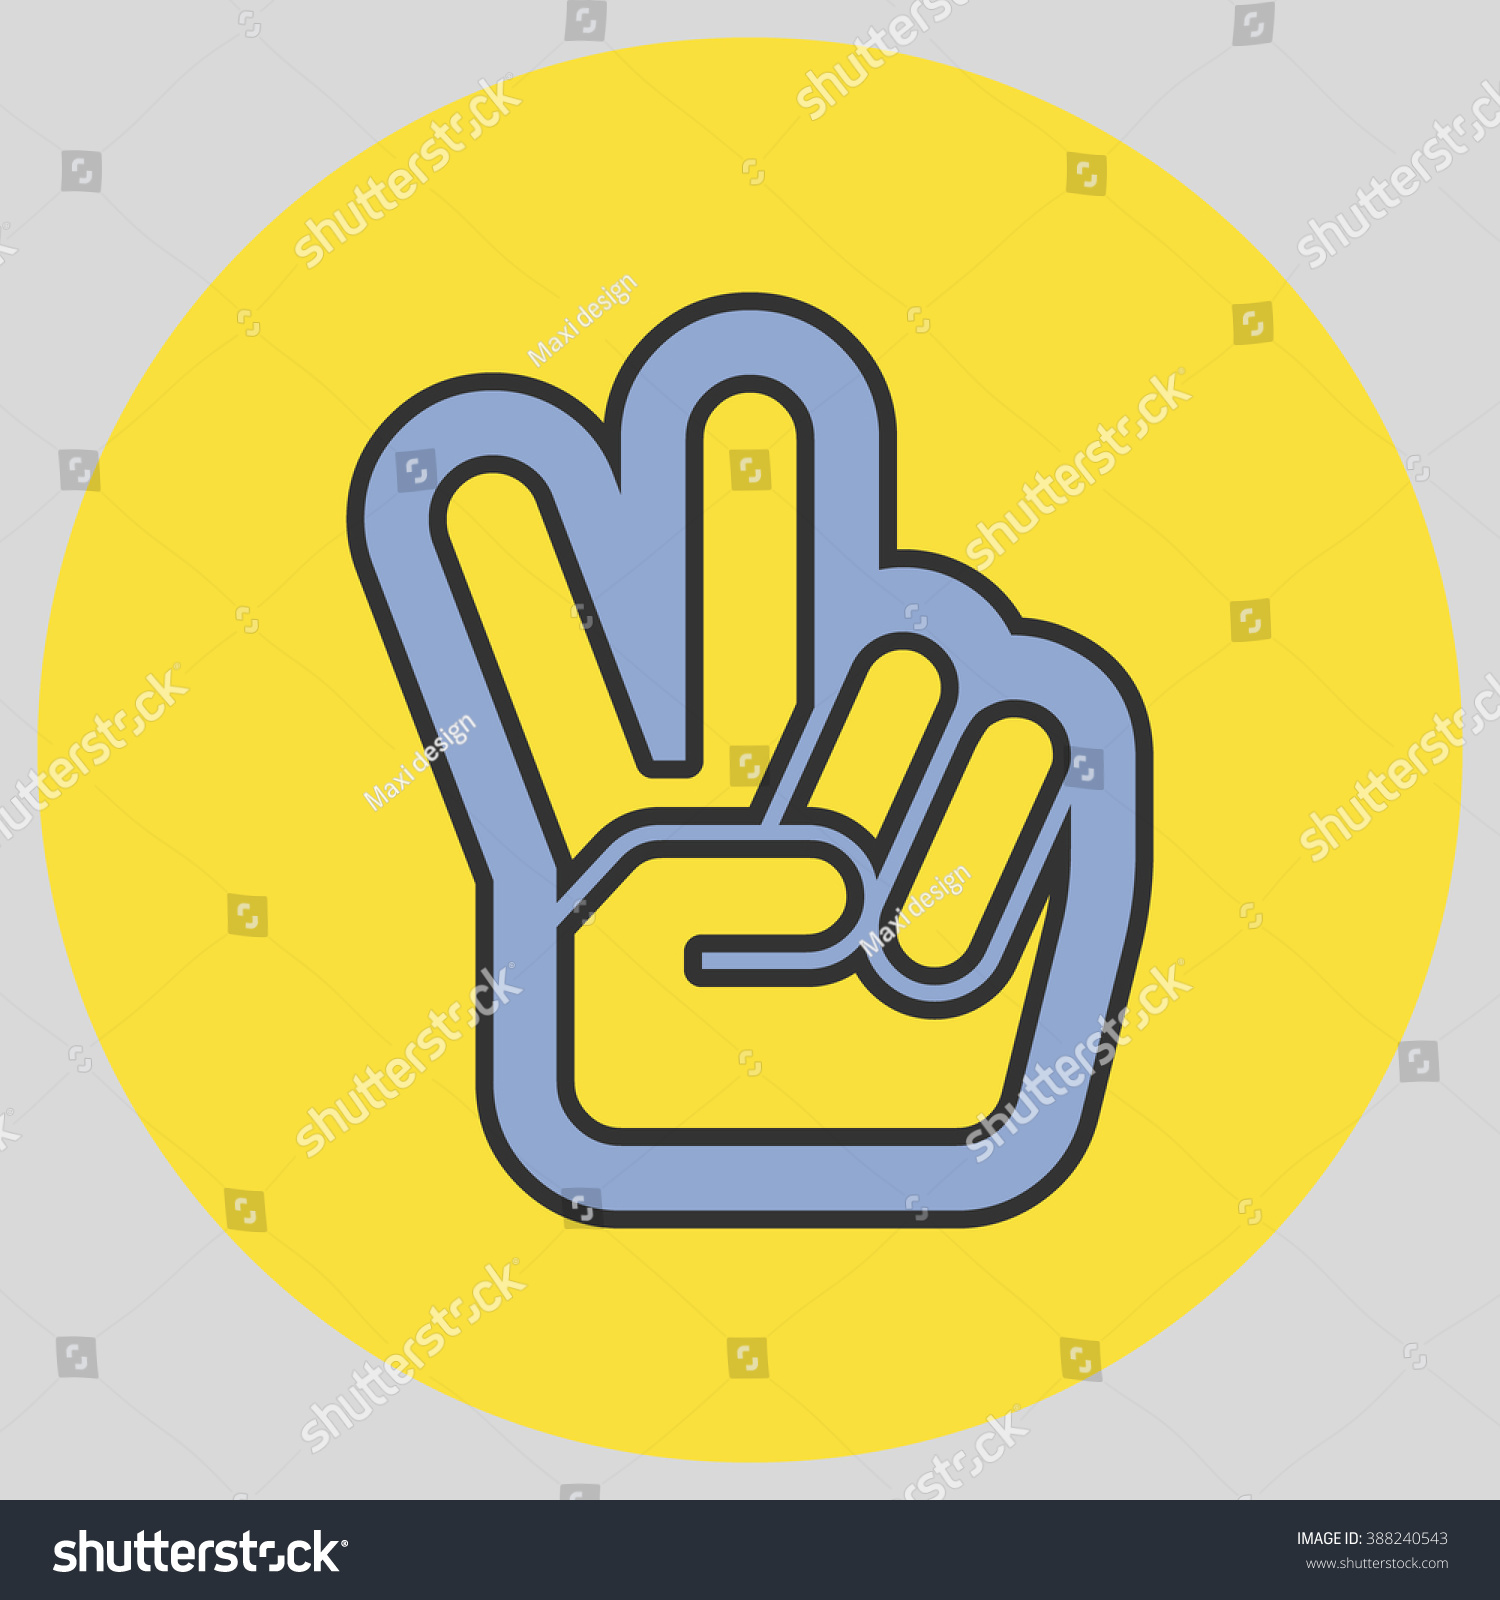 Hand two fingers peace victory symbol stock vector 388240543 hand with two fingers up in the peace or victory symbol vector peace sign biocorpaavc Gallery